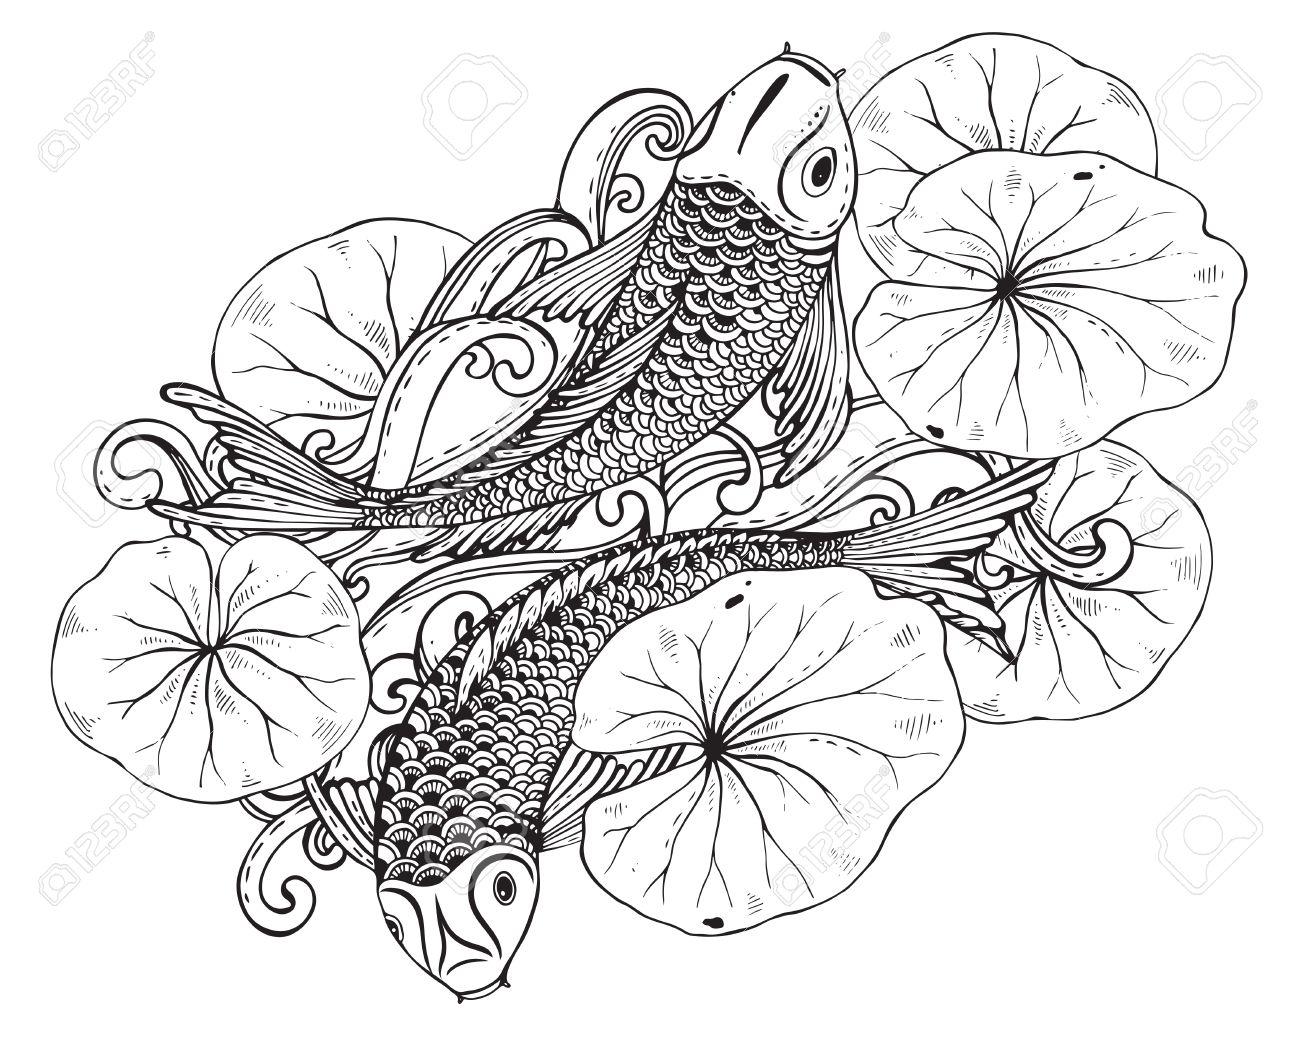 1300x1040 Hand Drawn Vector Illustration Of Two Koi Fishes (Japanese Carp